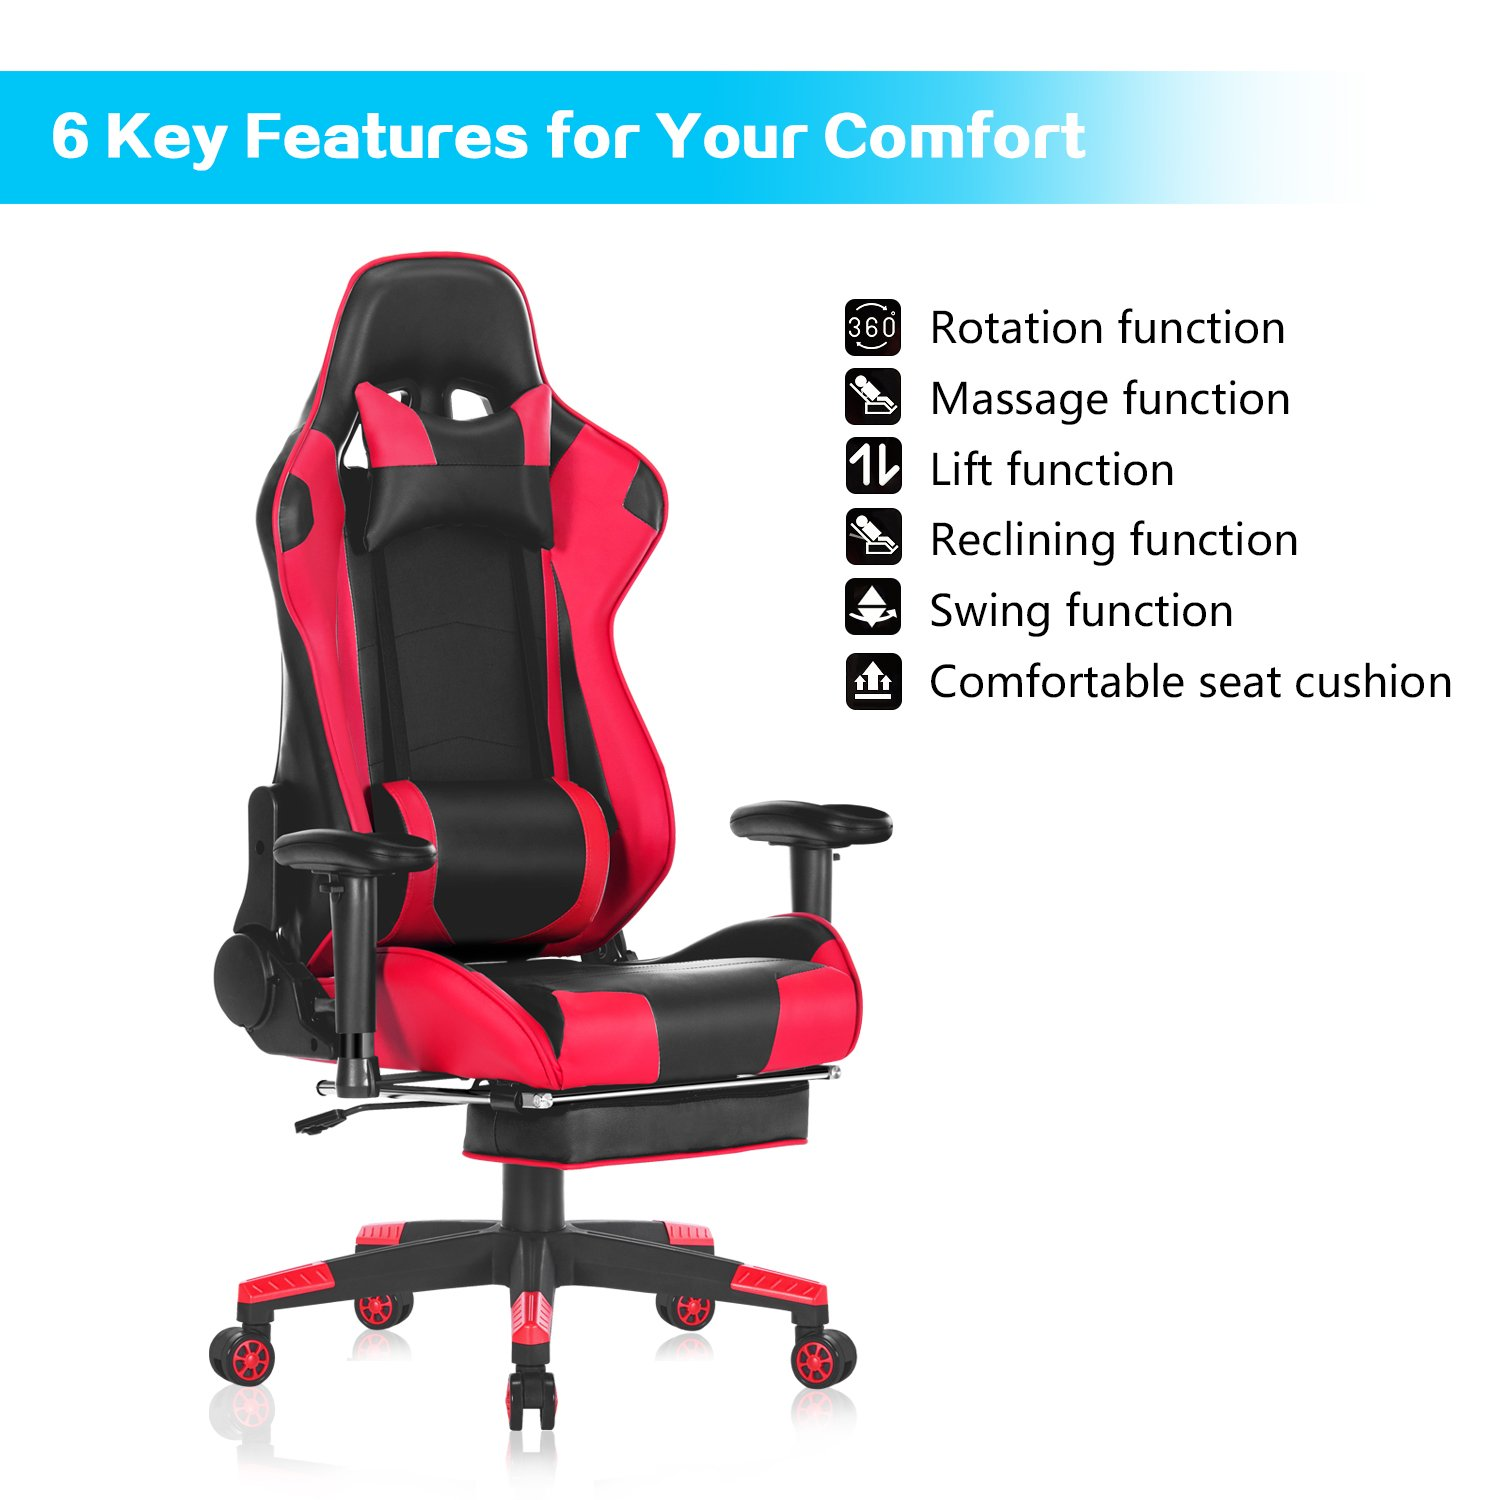 HEALGEN Back Massage Gaming Chair with Footrest,PC Computer Video Game Racing Gamer Chair High Back Reclining Executive Ergonomic Office Desk Chair with Headrest Lumbar Support Cushion GM002 Red